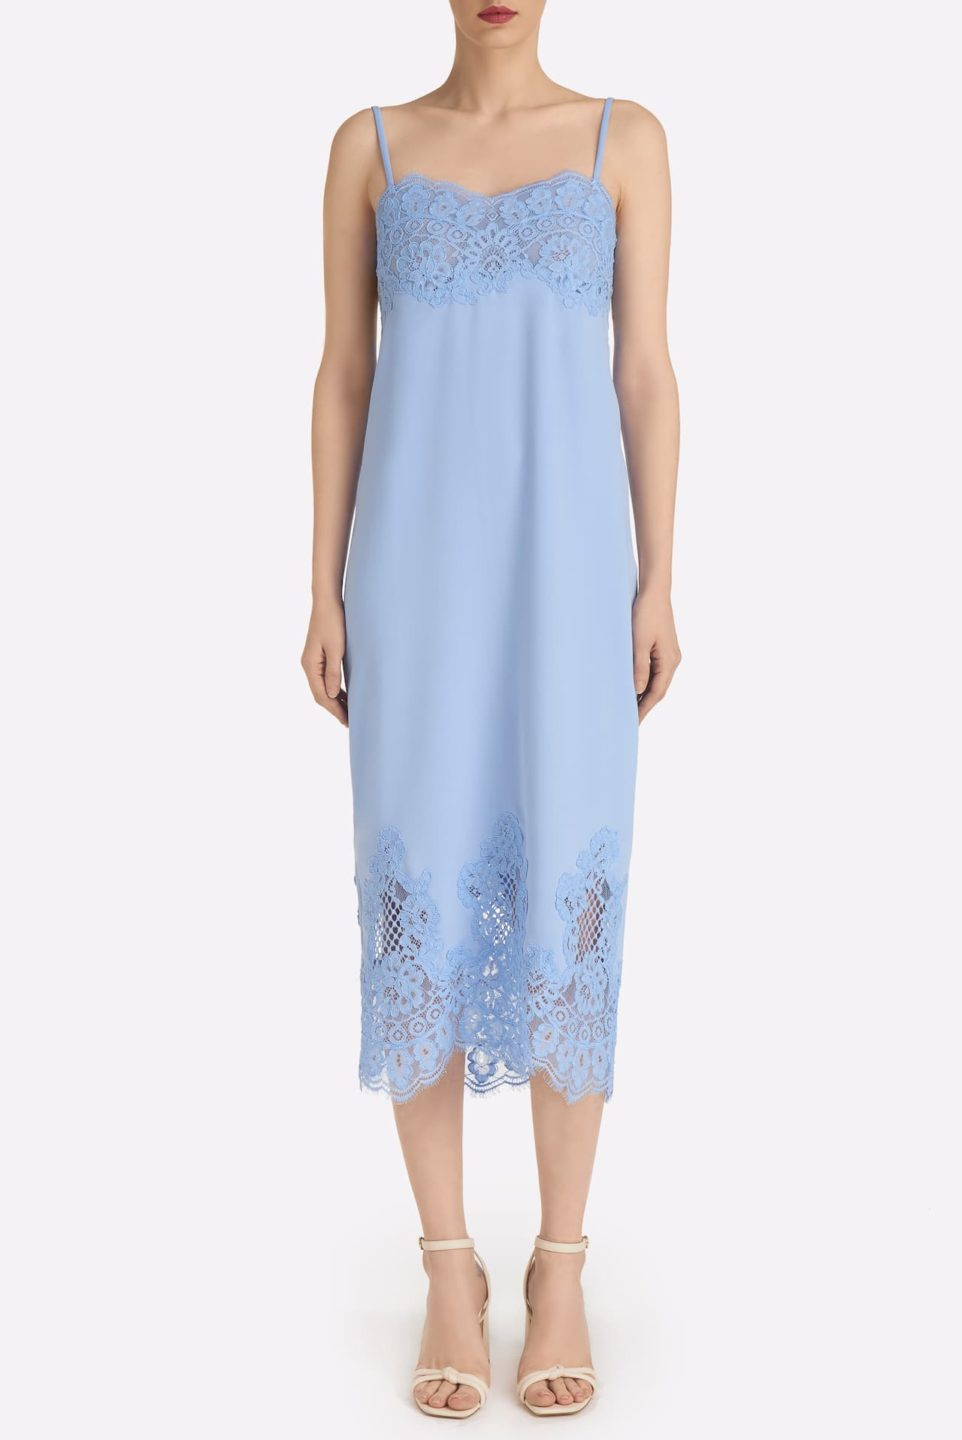 Cardina SS2155 Blue Crepe Camisole Sheath Dress with Cordered lace Accents